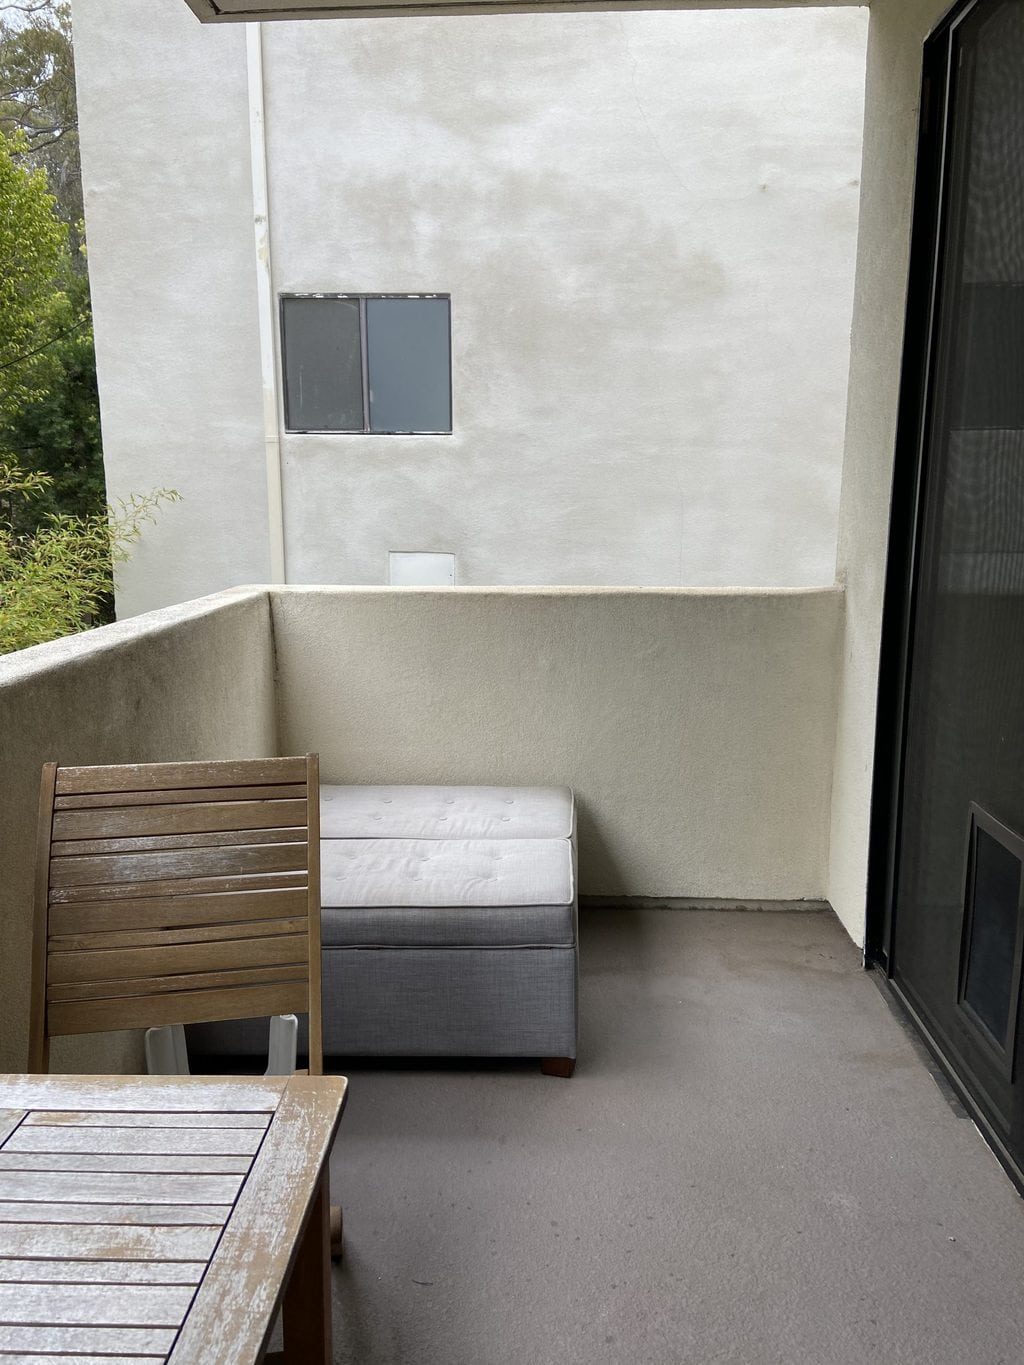 The before side of the lounge area of the patio with a small grey bench.